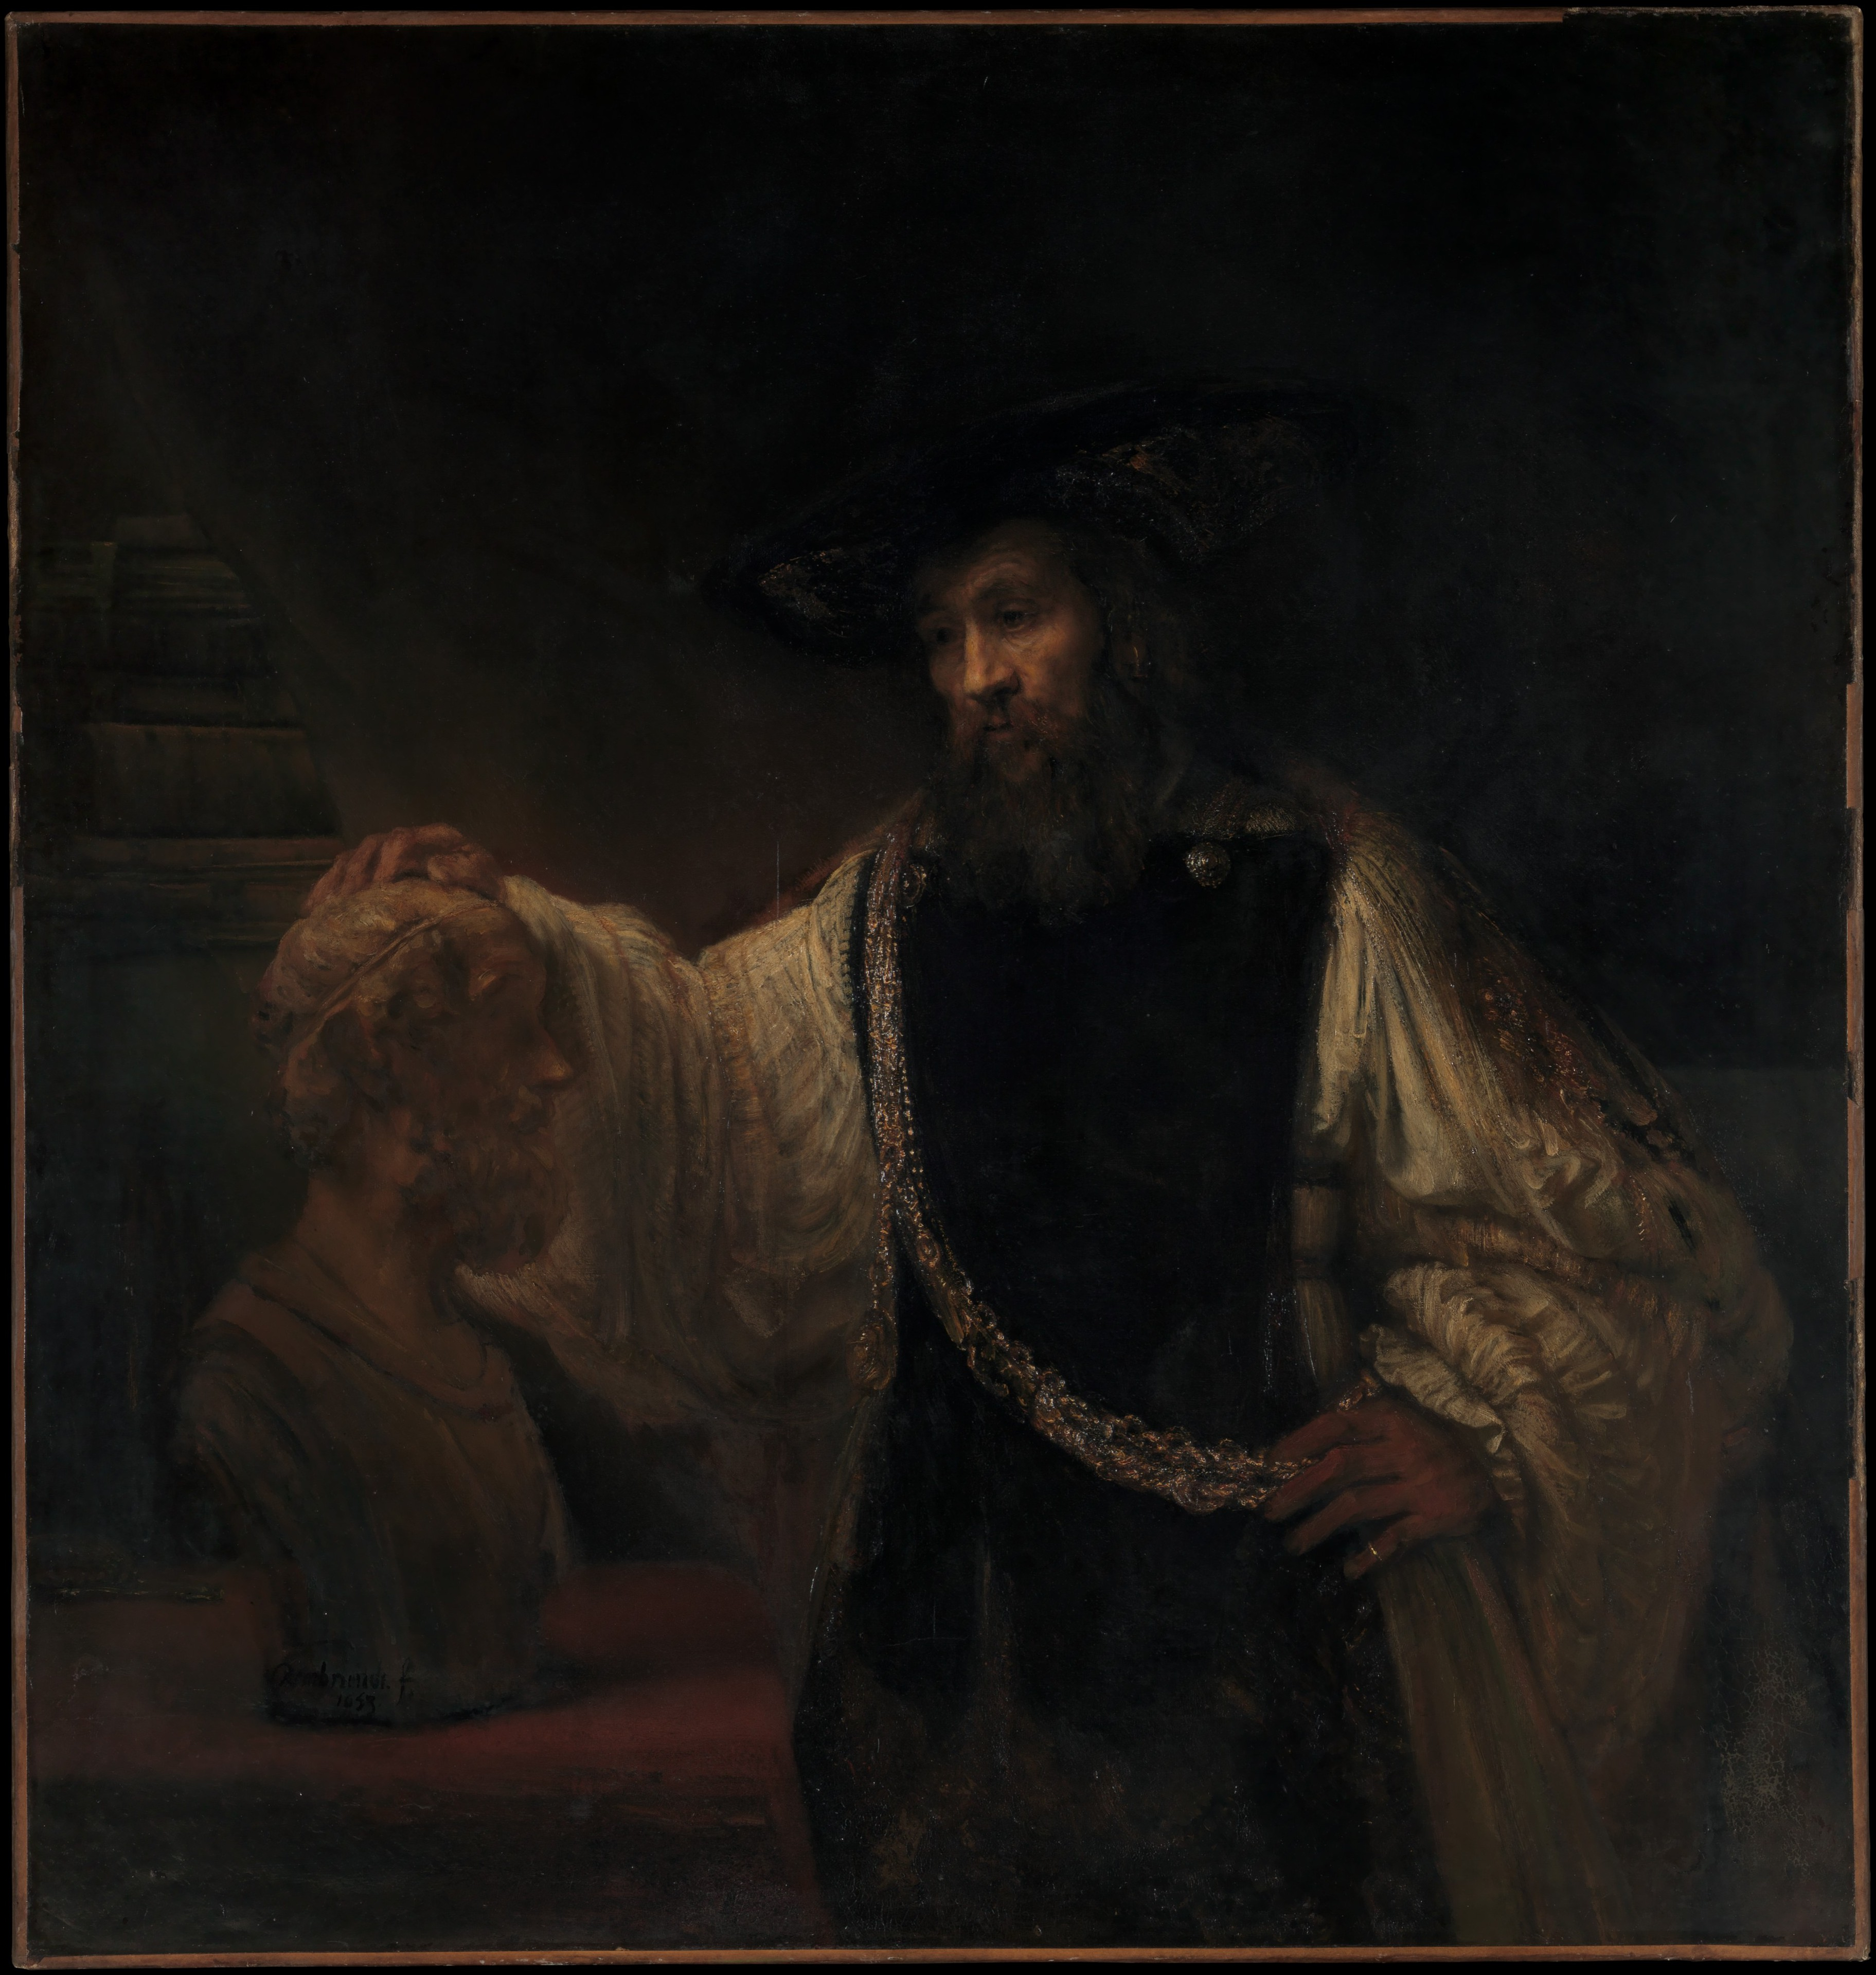 Rembrandt van Rijn, Aristotle with a Bust of Homer